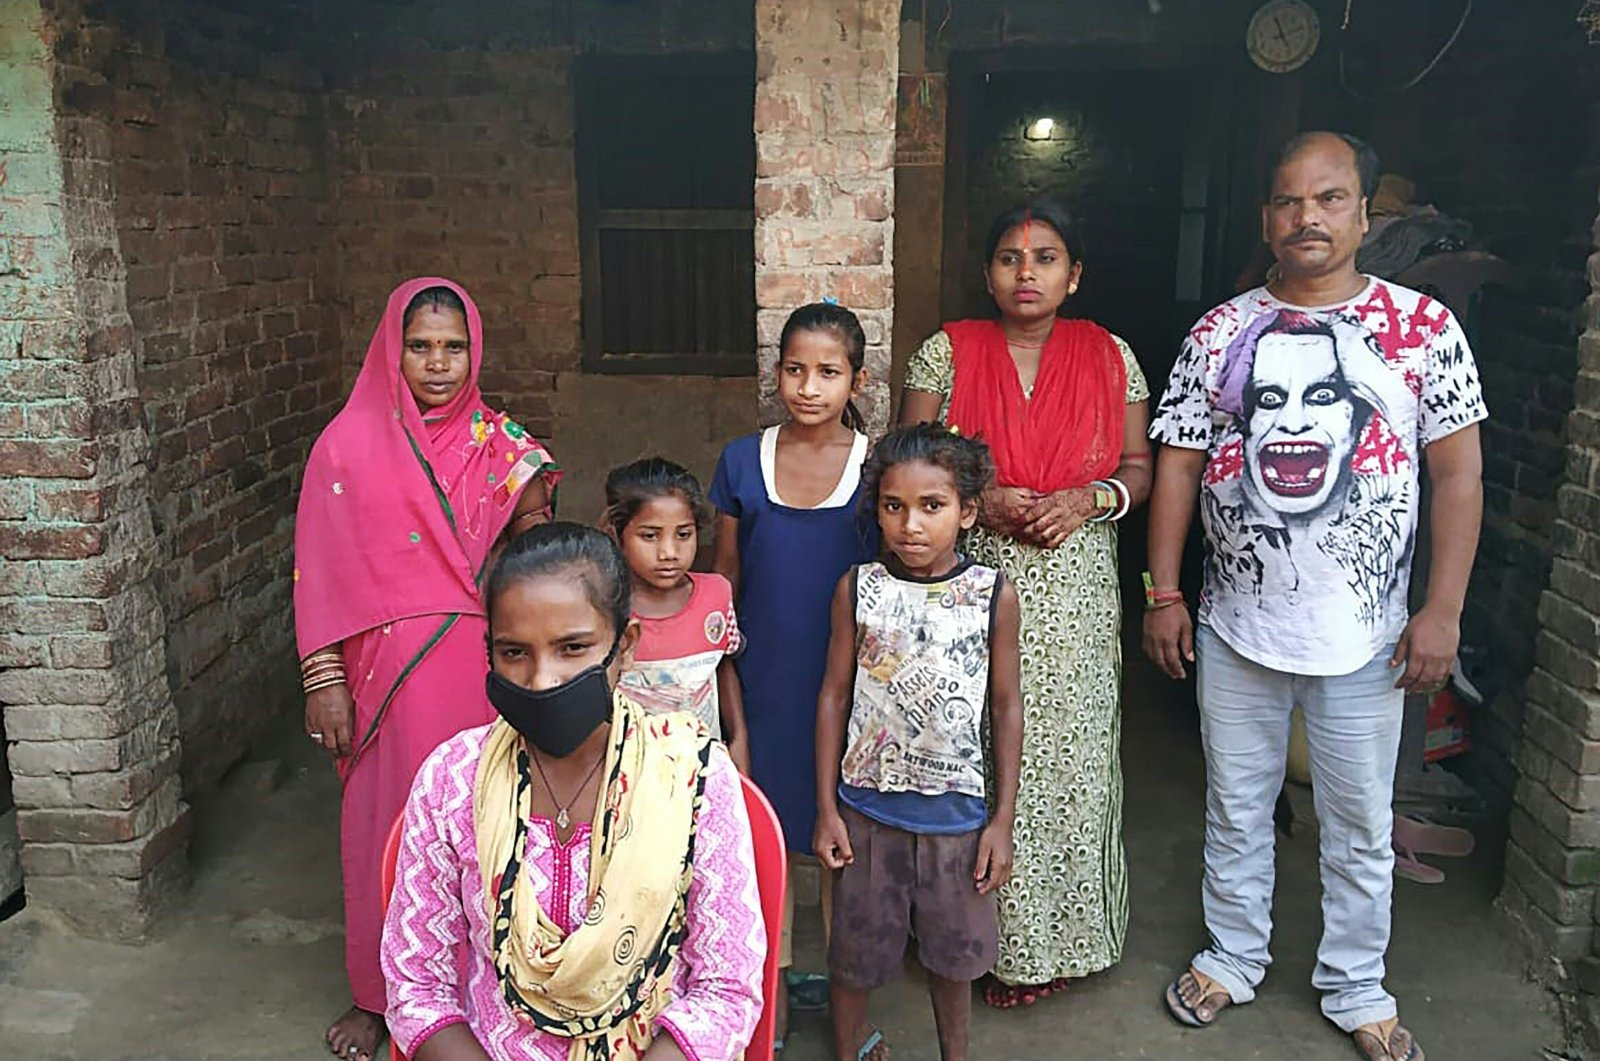 Jyoti Kumari Paswan, 15, (C-bottom) and her family stand in front of their house in Siruhully village, the Darbhanga district, India, May 23, 2020. (Photo by STR / AFP)